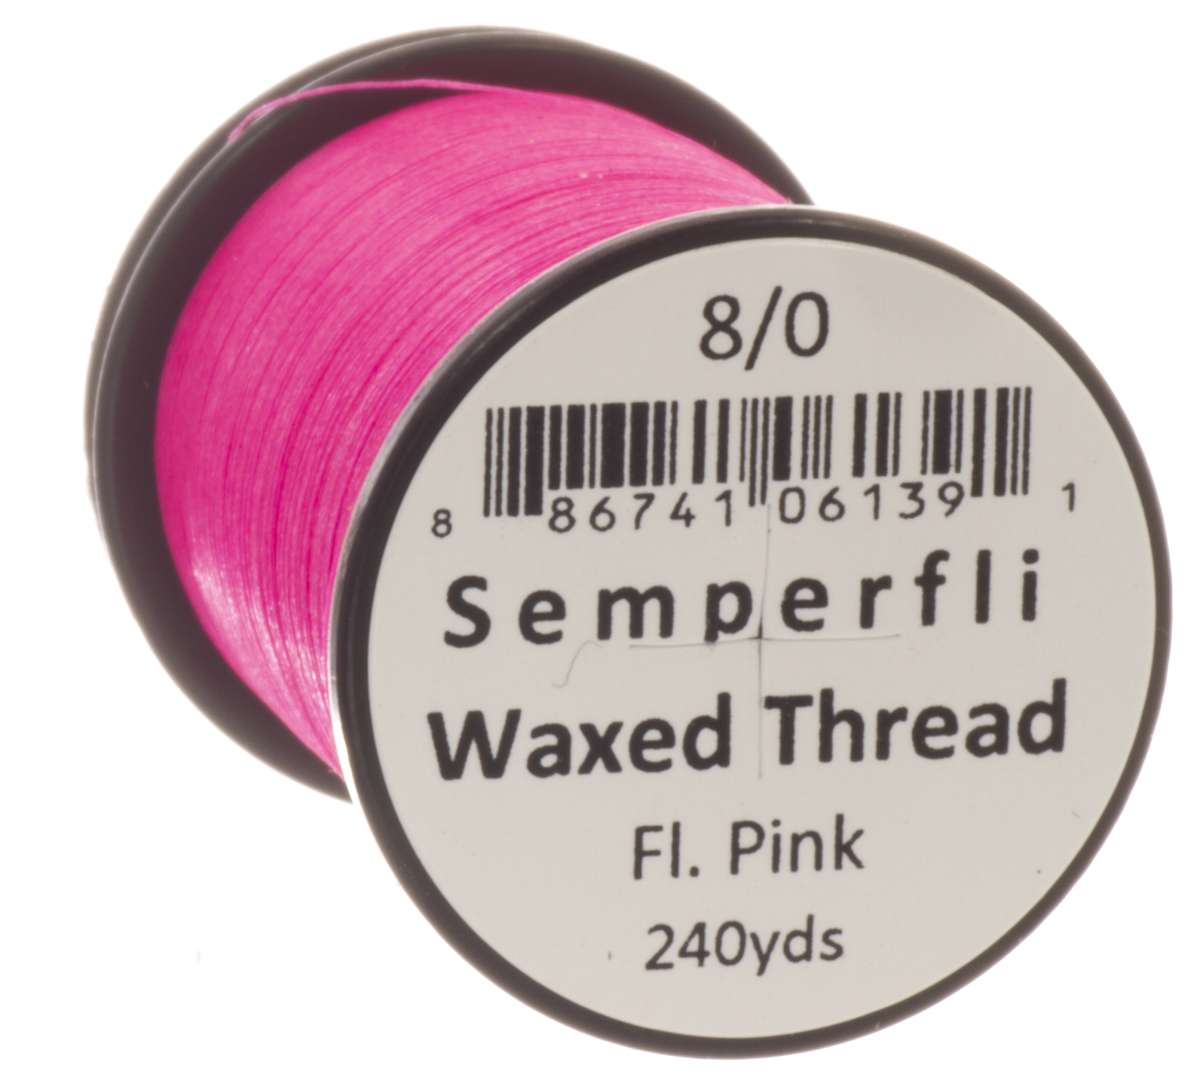 8/0 Classic Waxed Fluoro Pink Sem-0400-4627